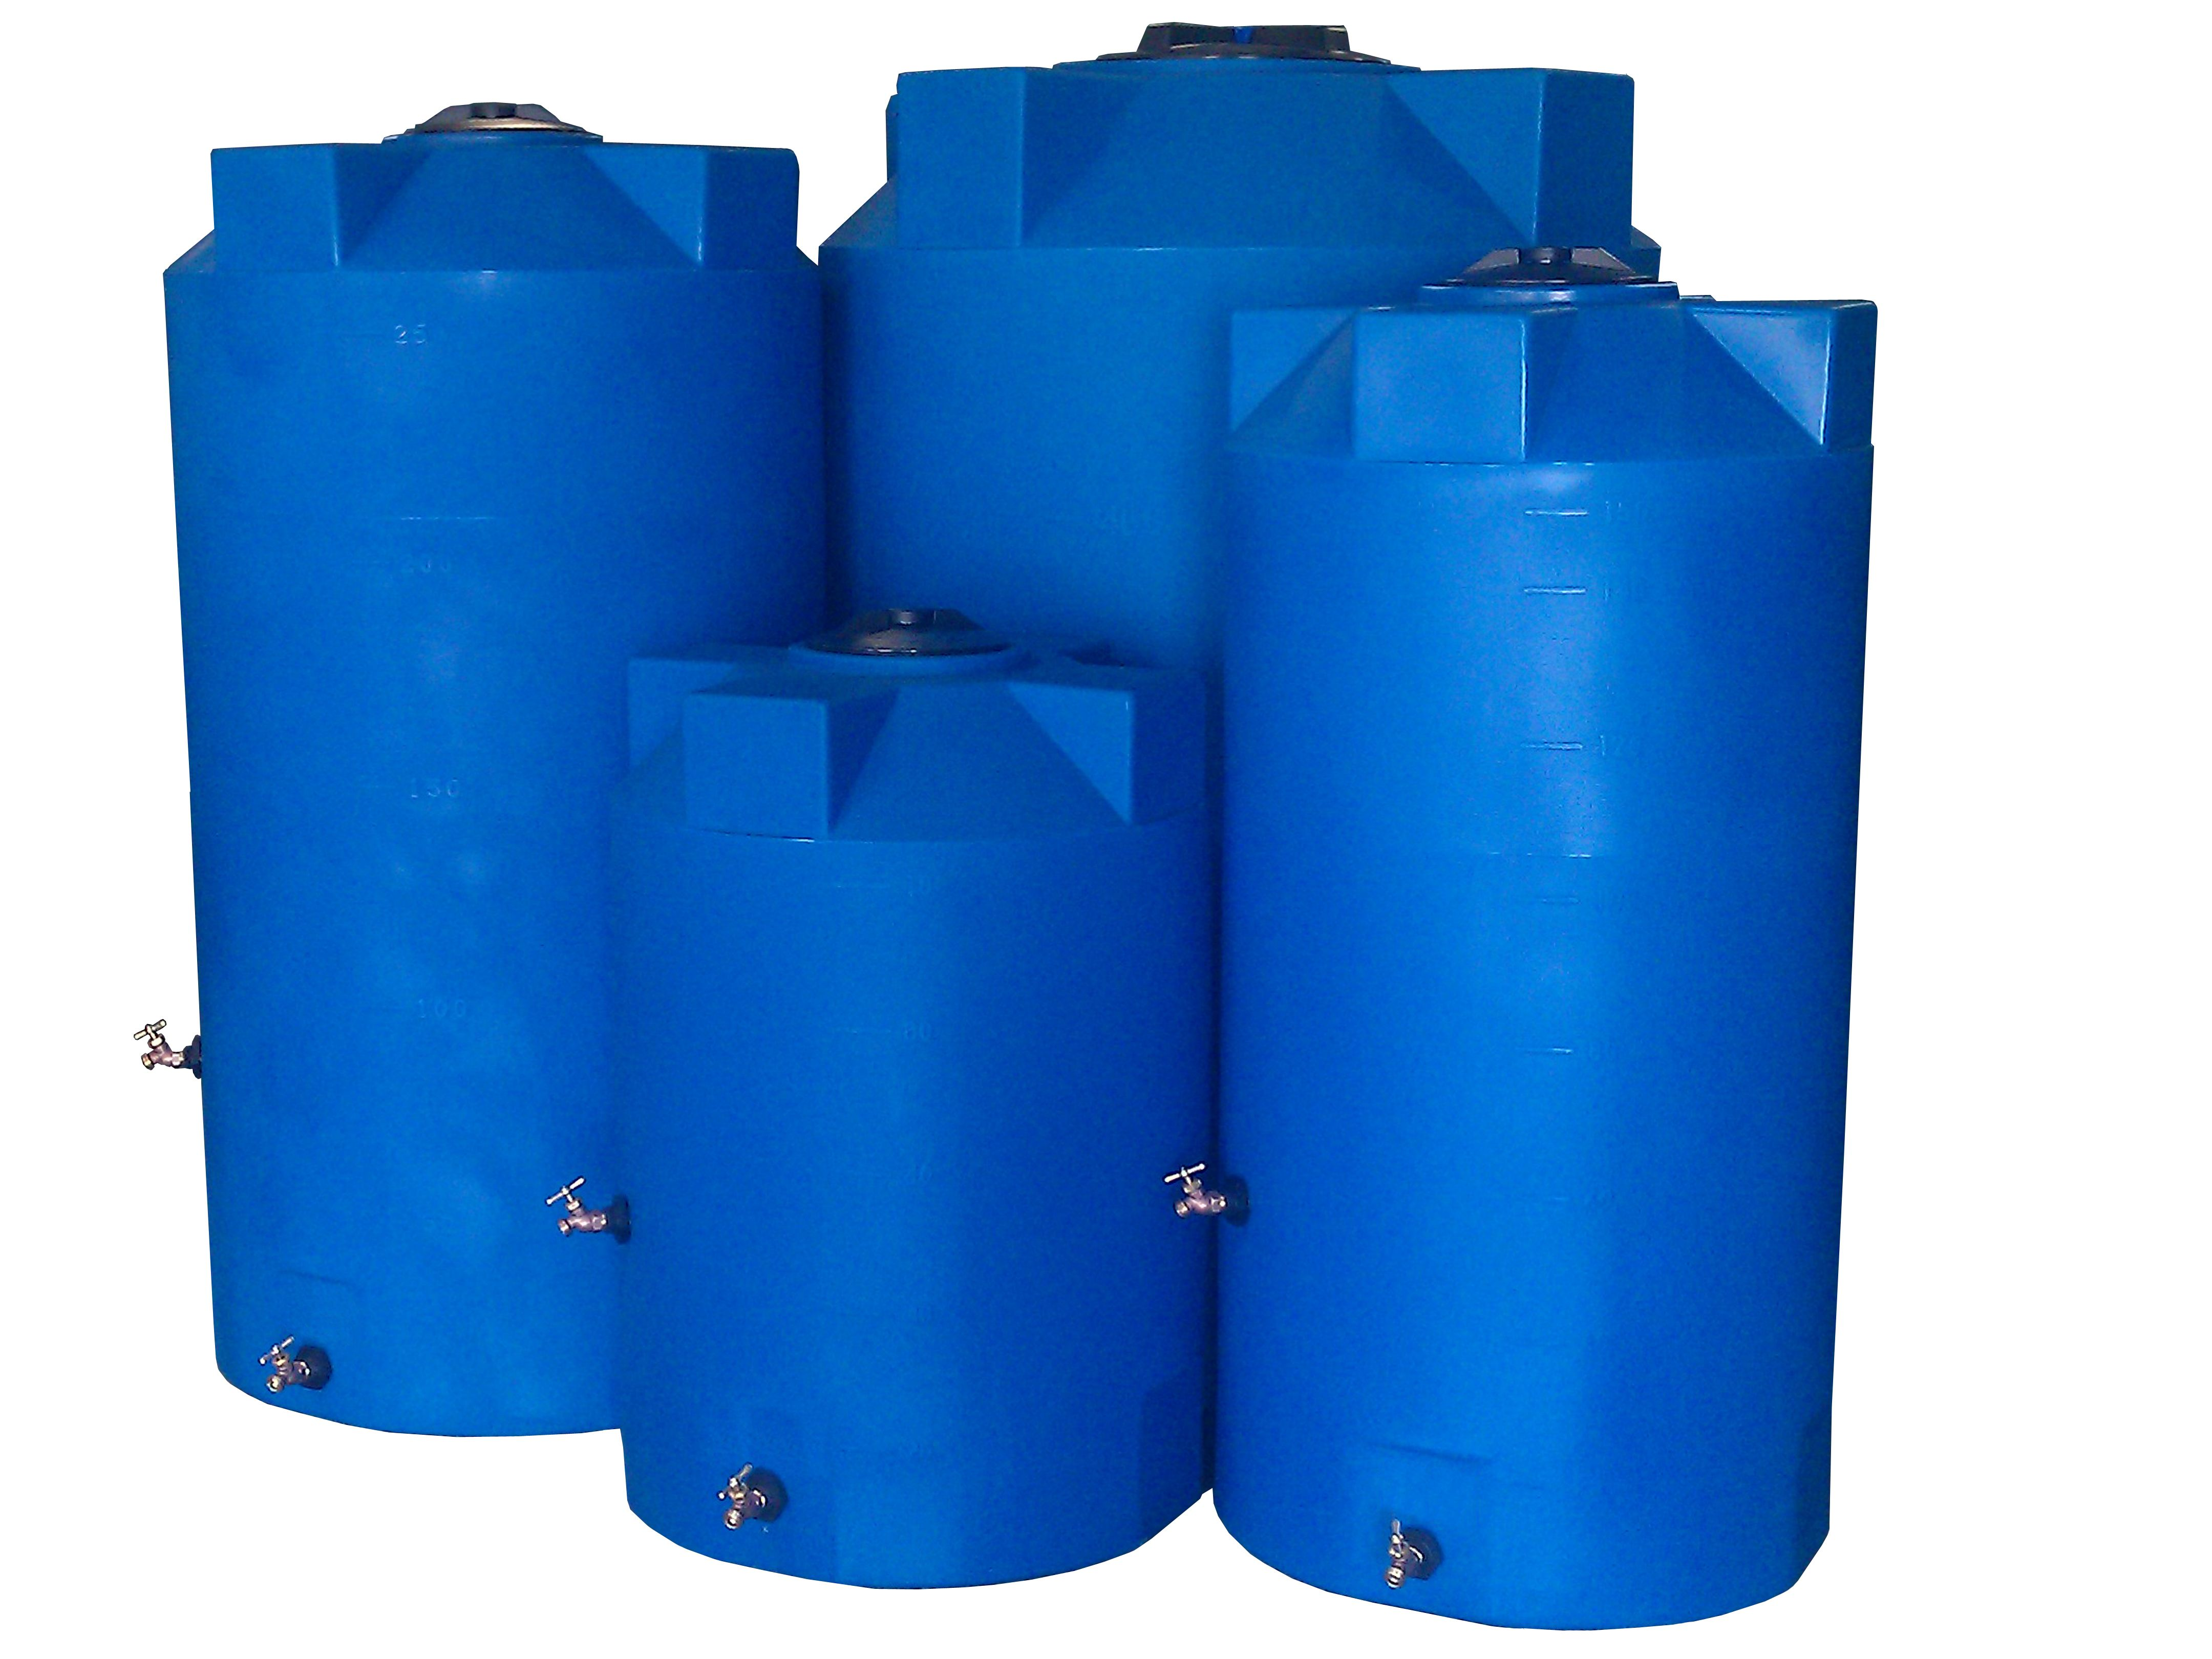 Emergency Water Storage Tanks Equipped With All The Necessary Fittings Needed To Store An Emergency Drinking Water Storage Storing Water Water Storage Tanks